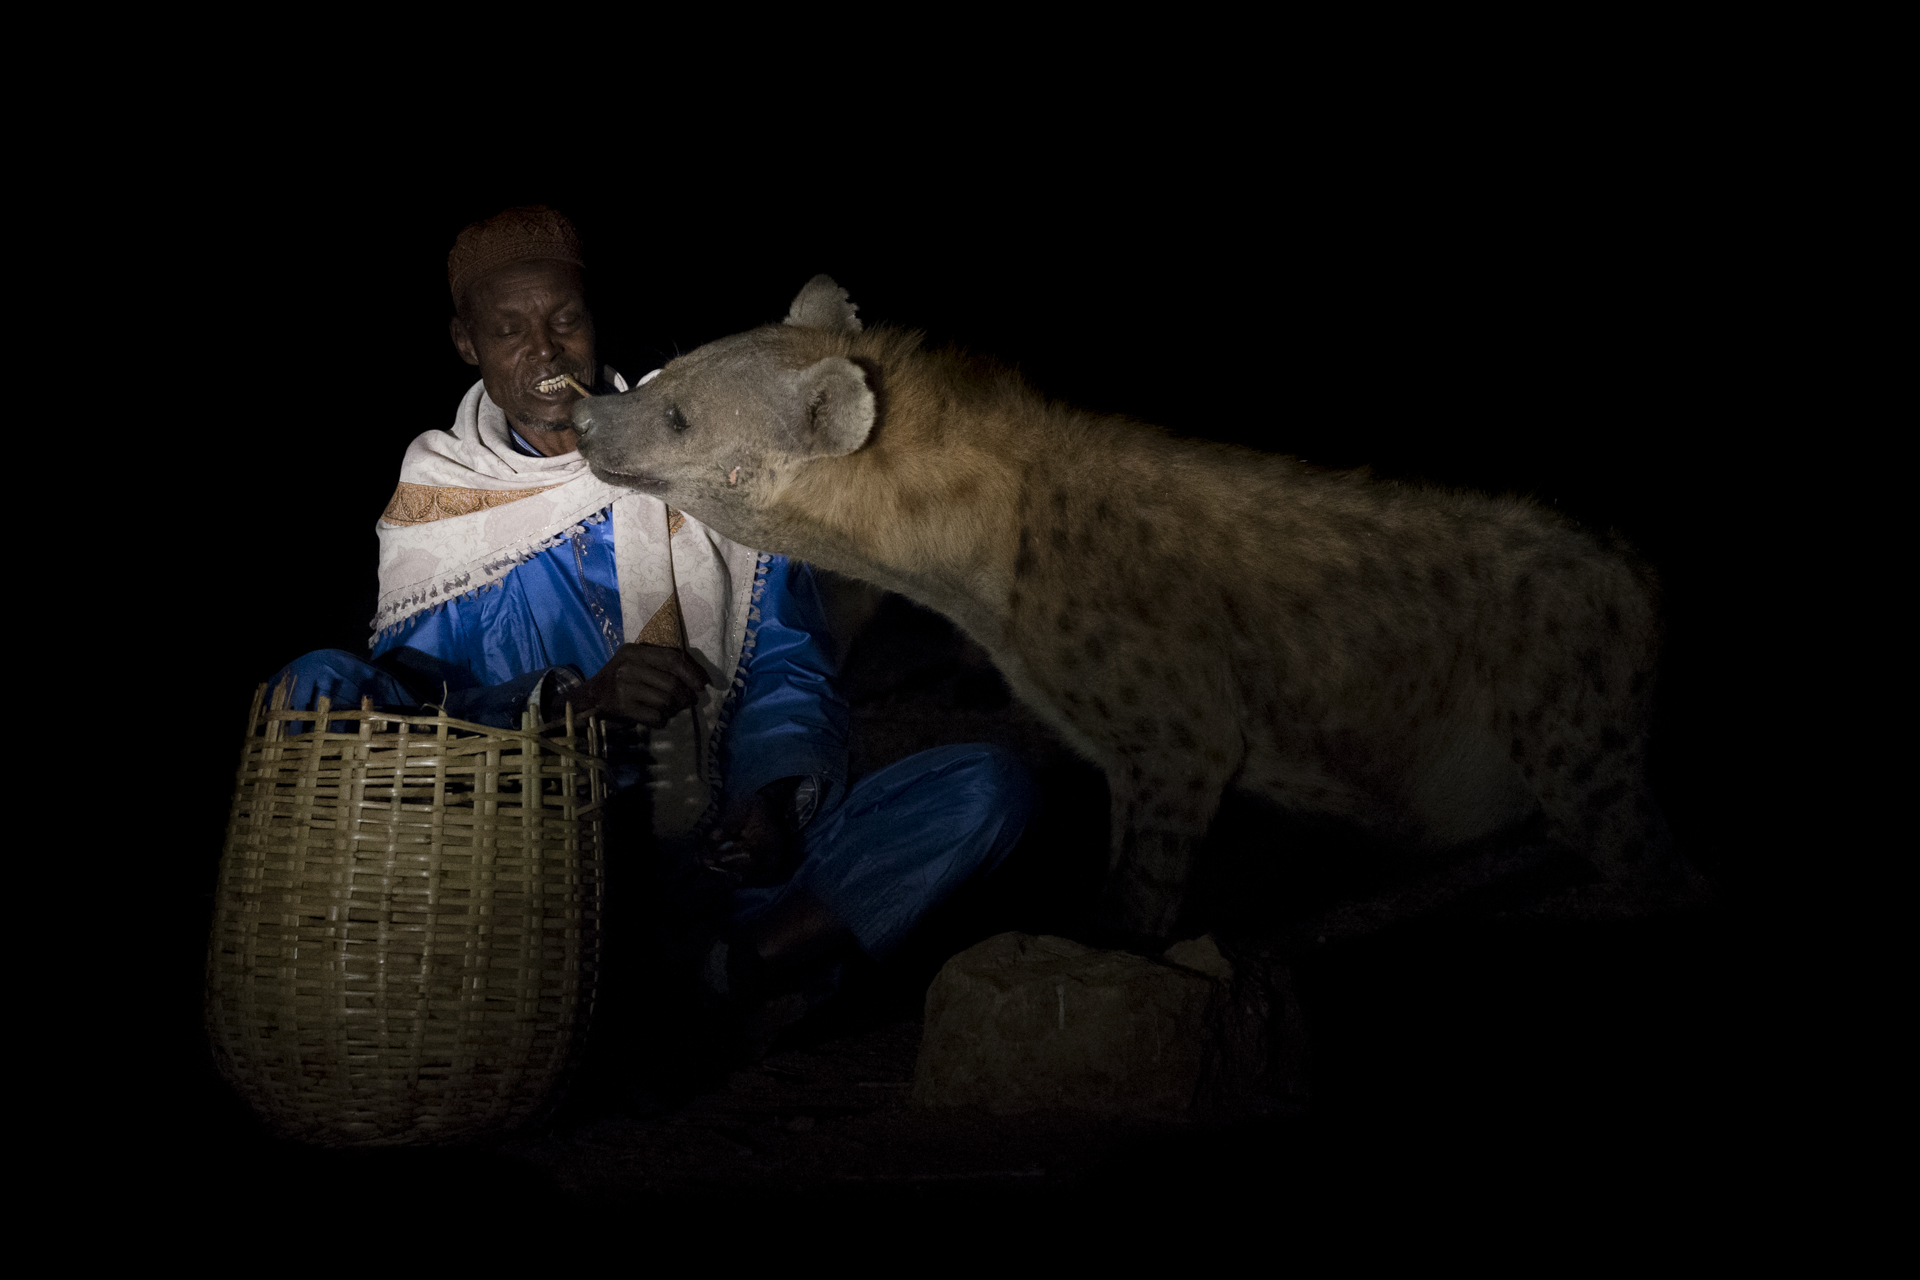 Yusuf is the oldest and one of the last remaining traditional hyena men, still in his traditional garments he feeds the hyenas for the reason he first began, spiritual reasons.